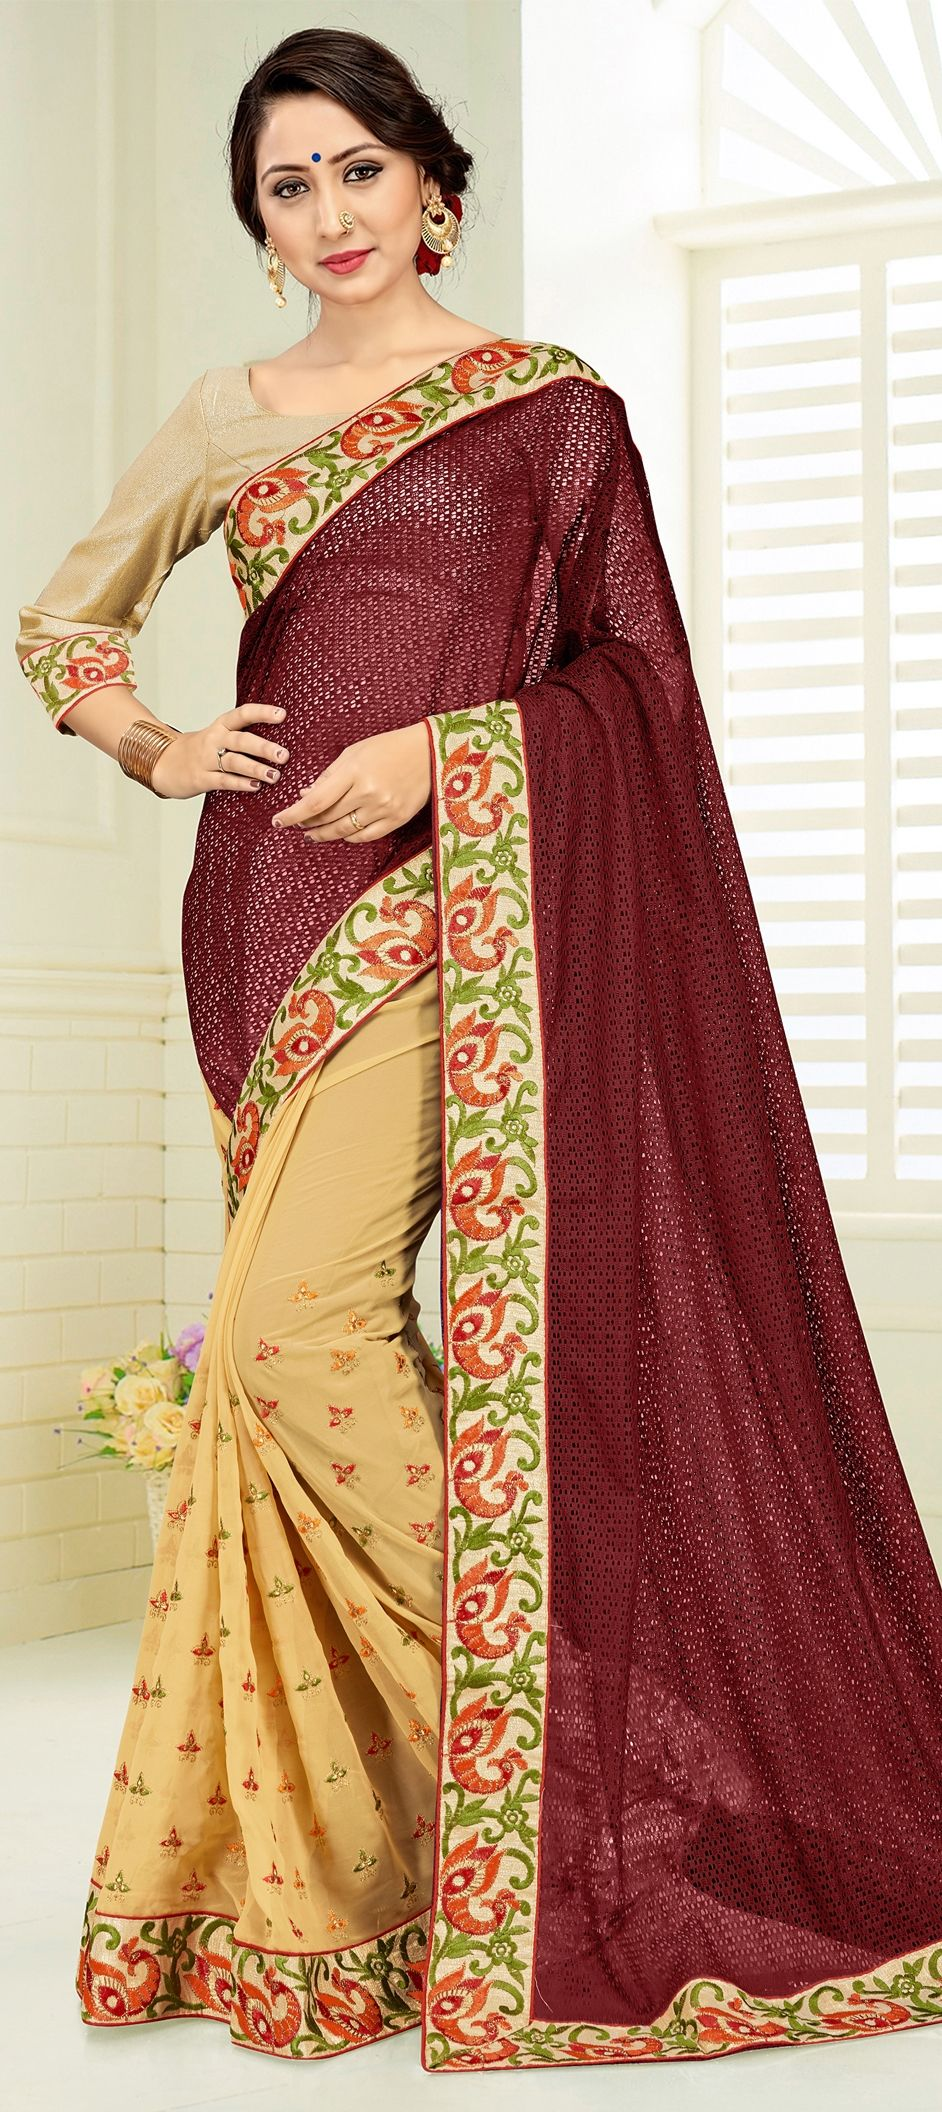 8bbc0f2f5a 1515867: Party Wear Beige and Brown, Red and Maroon color Faux ...